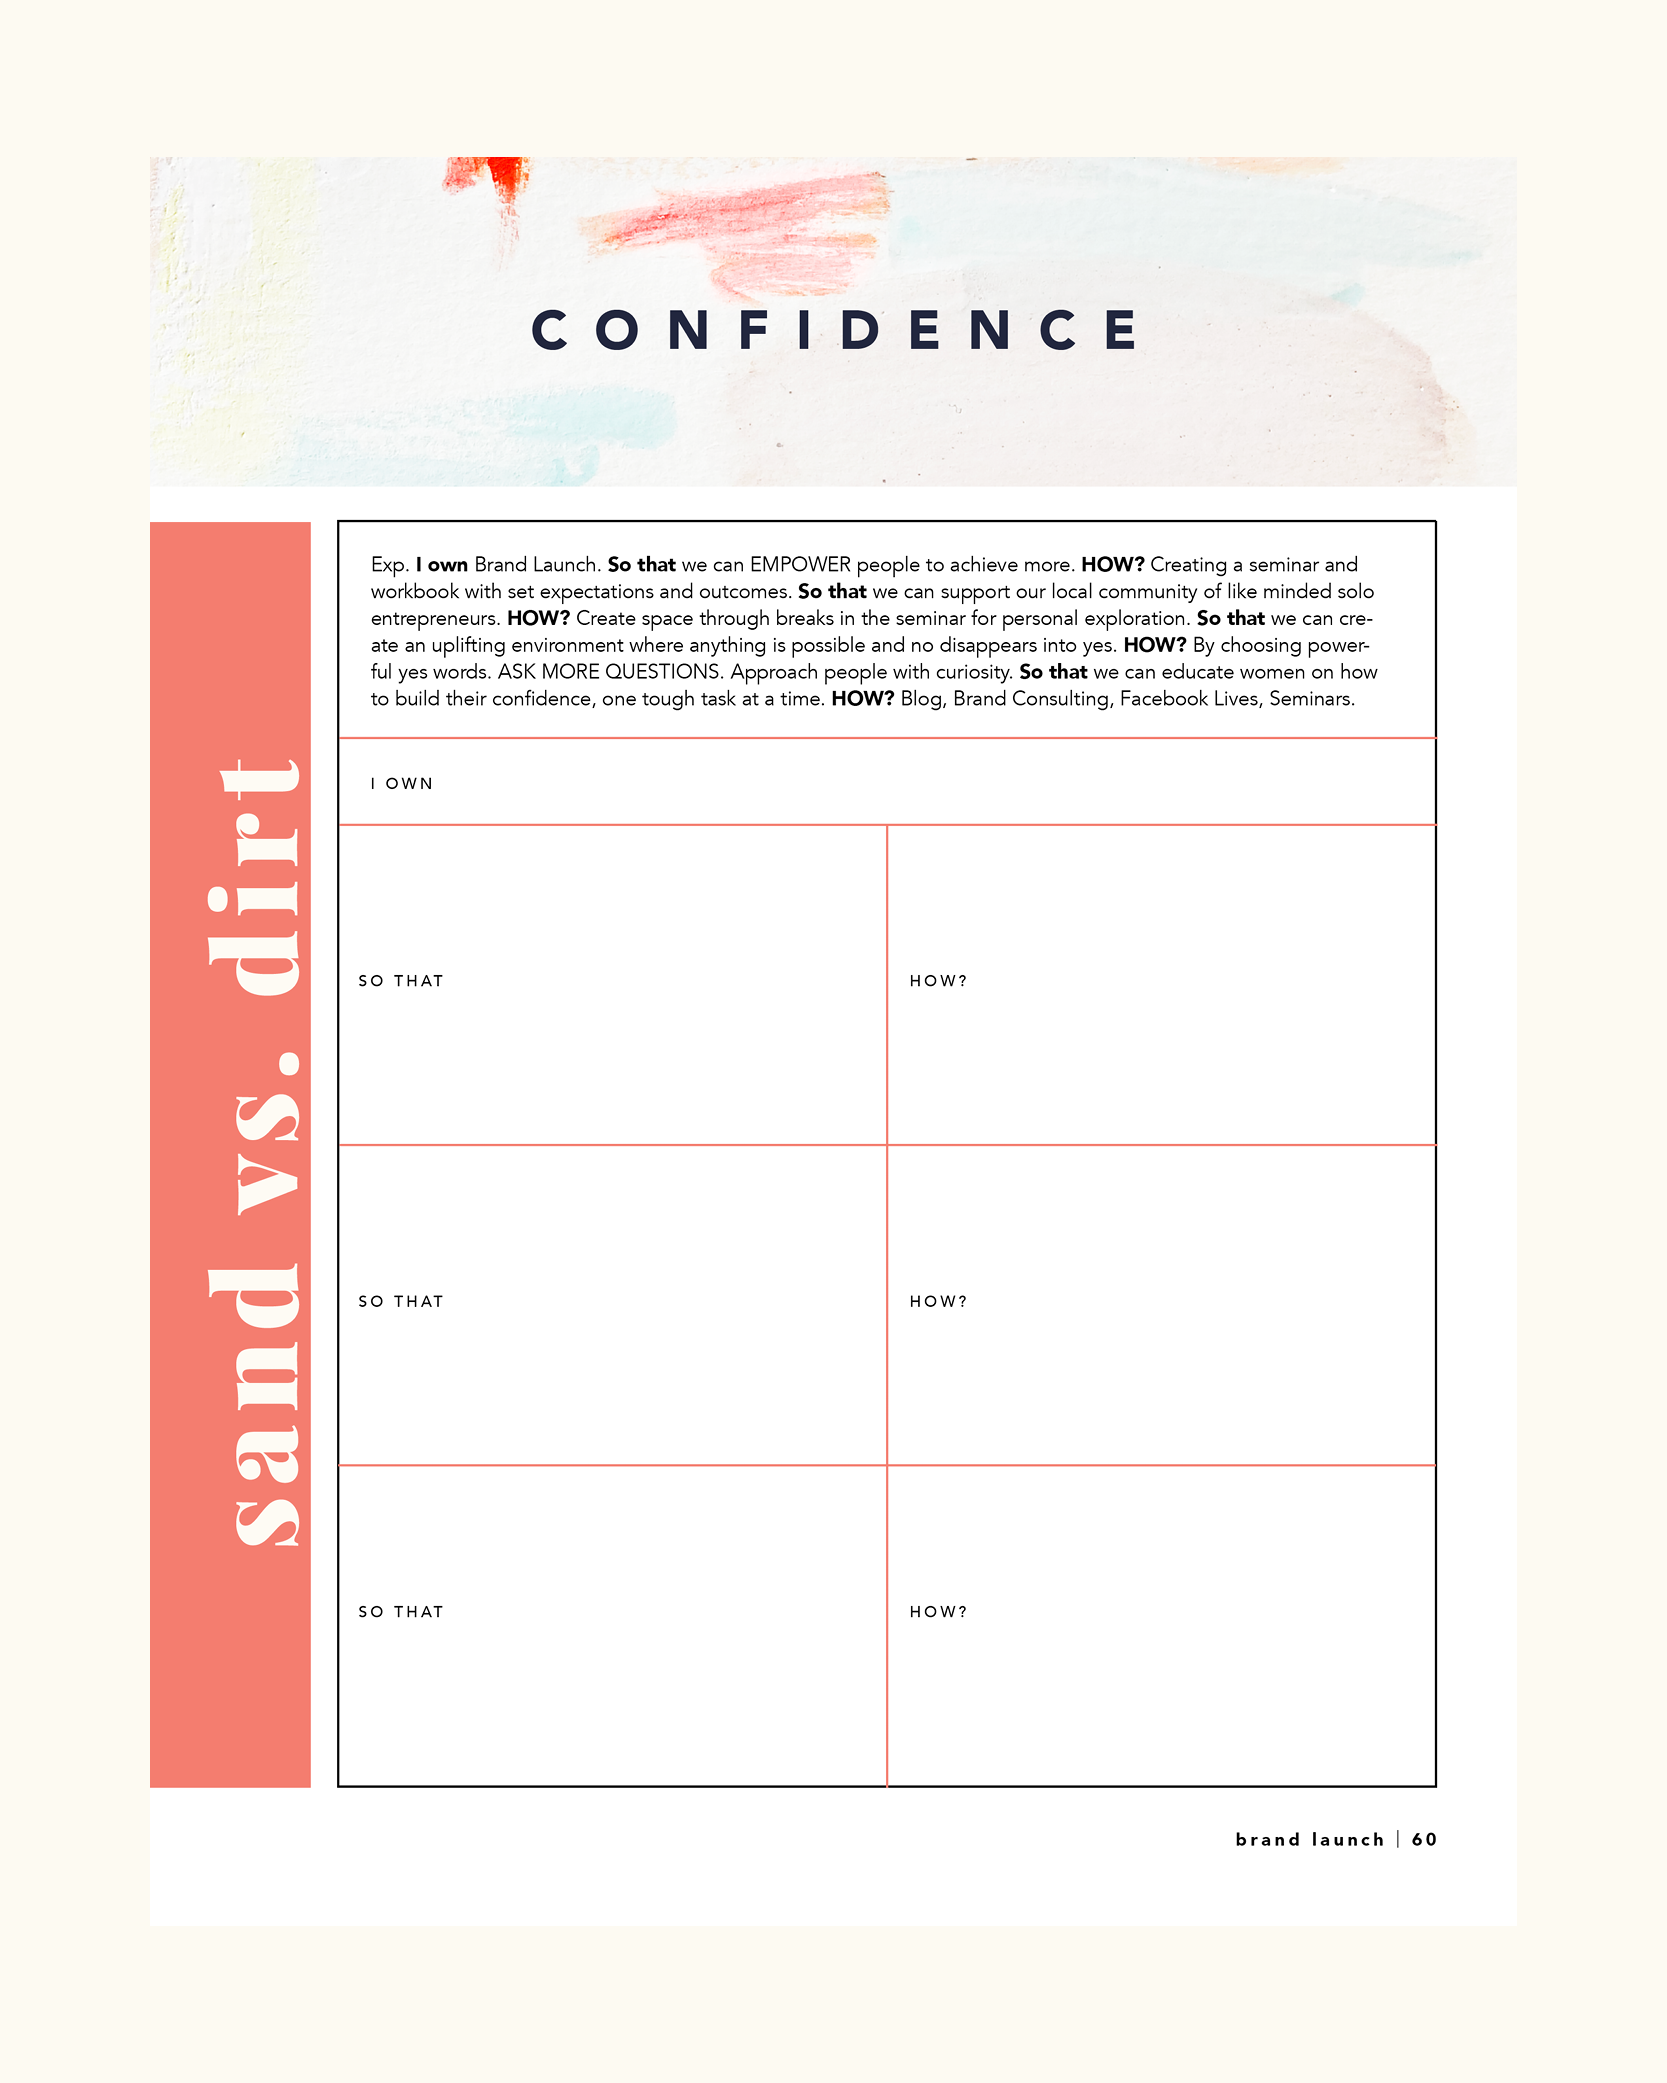 brandlaunch_workbook_design_graphic_desmoines_cultivate_women3.png